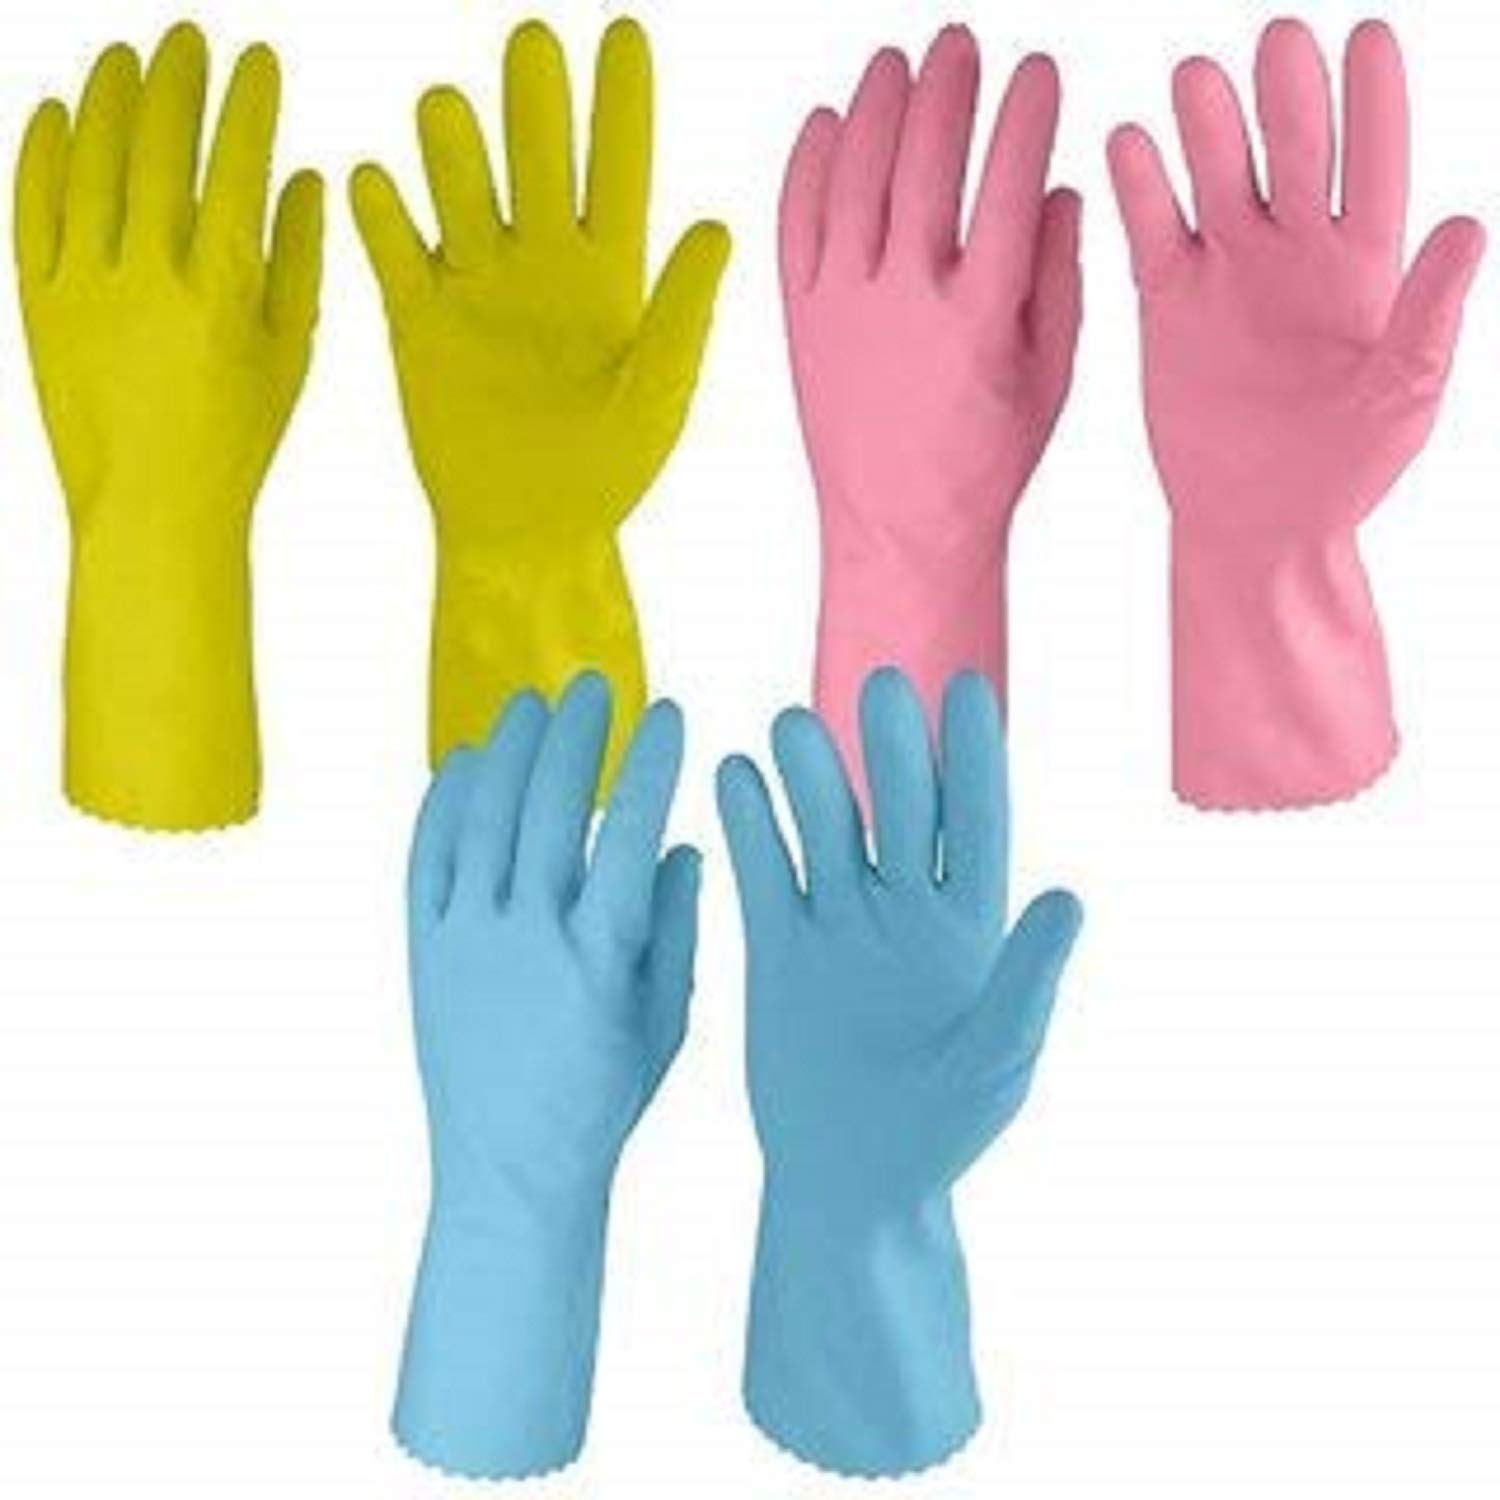 Cleaning Gloves Reusable Rubber Hand Gloves, Stretchable Gloves